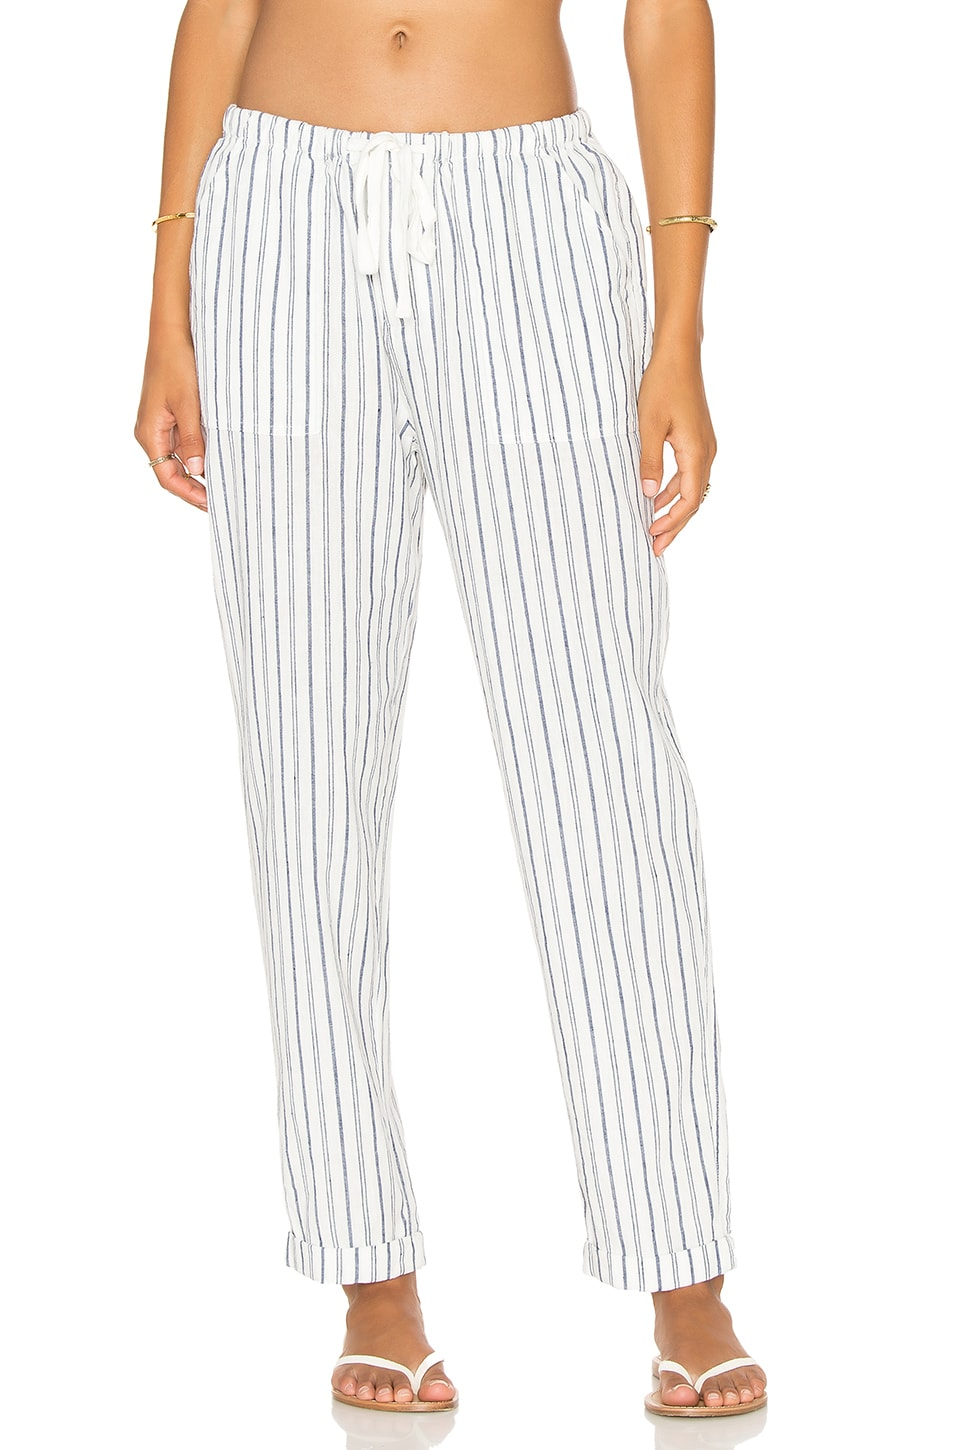 Joie Cindee Pant in Porcelain